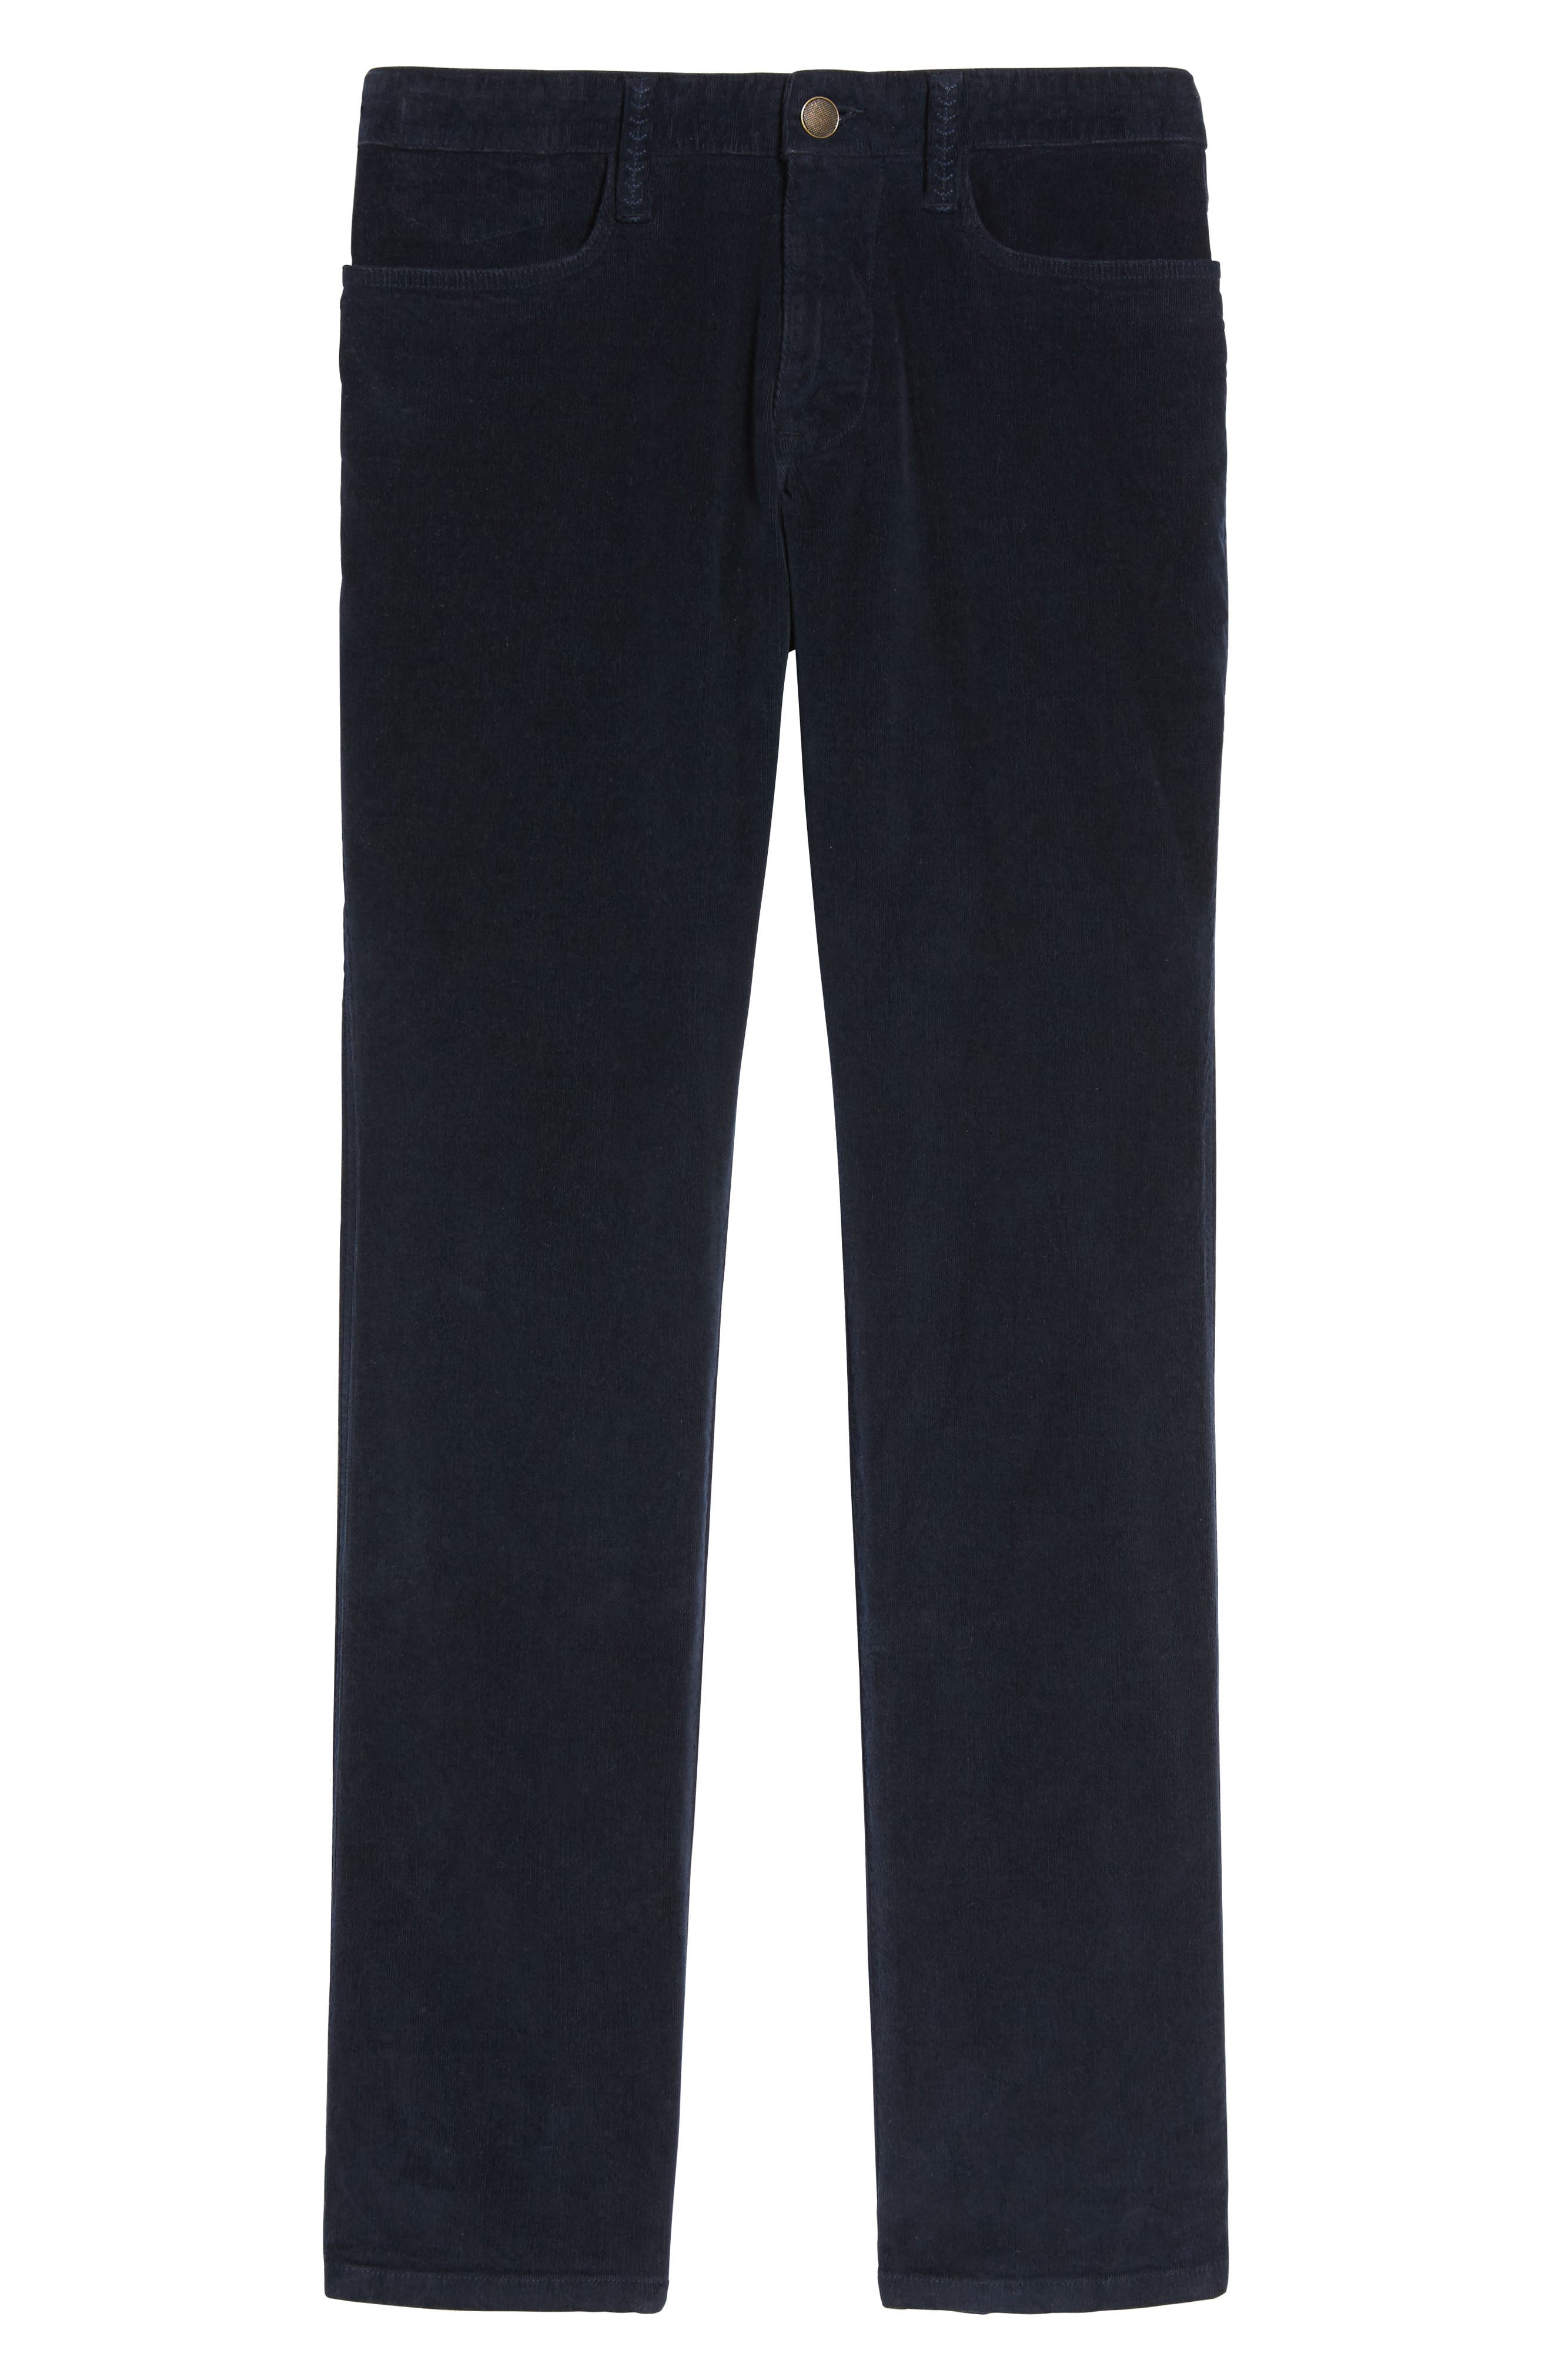 Modern Fit Stretch Corduroy Pants,                             Alternate thumbnail 6, color,                             Marine